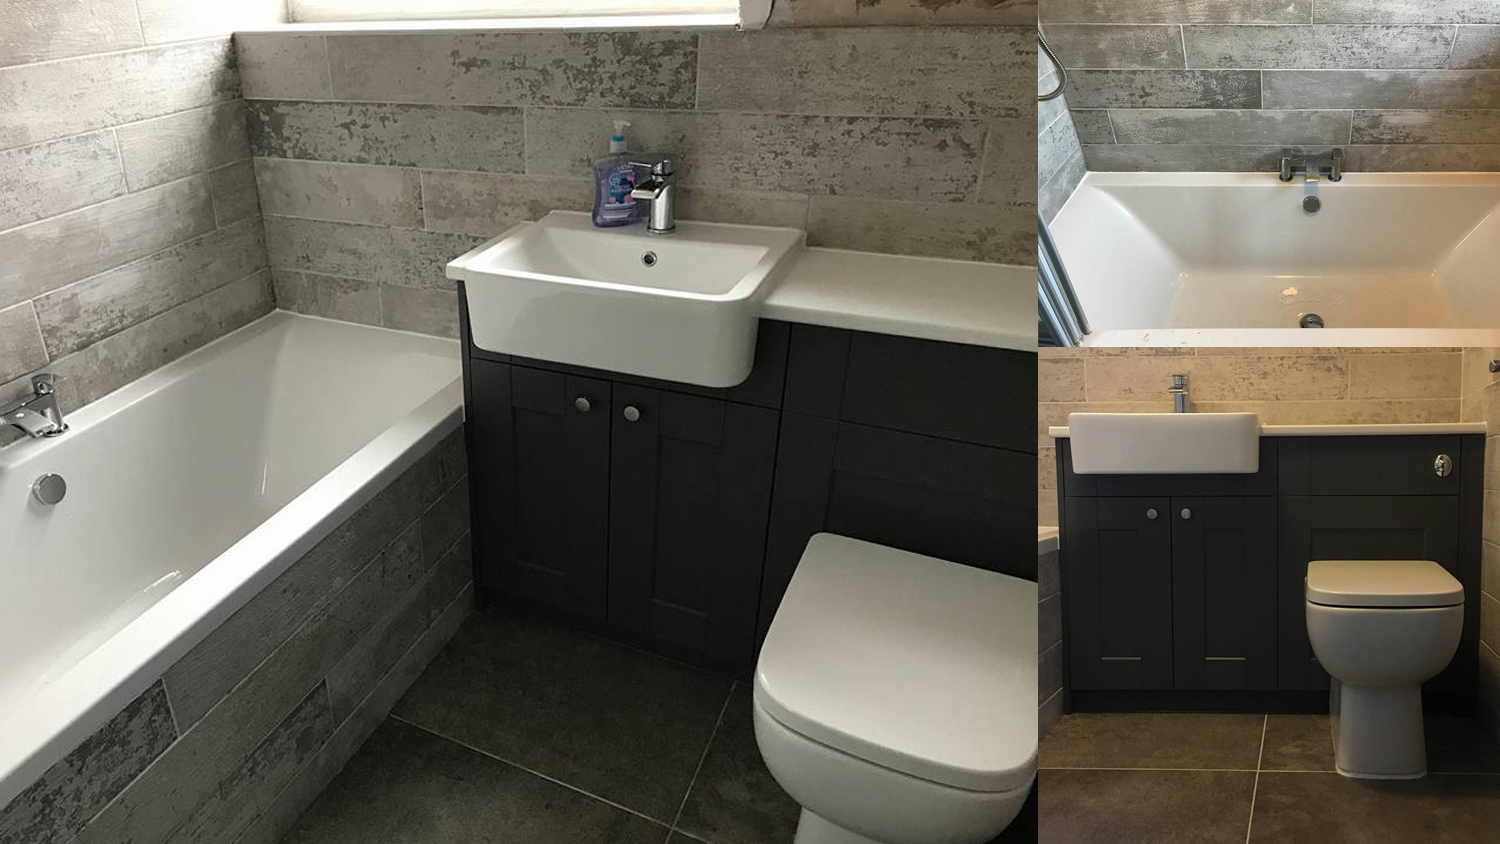 Deatonshaw Spalding Kitchens Bedrooms Bathrooms Installers Fitters - Local bathroom installers